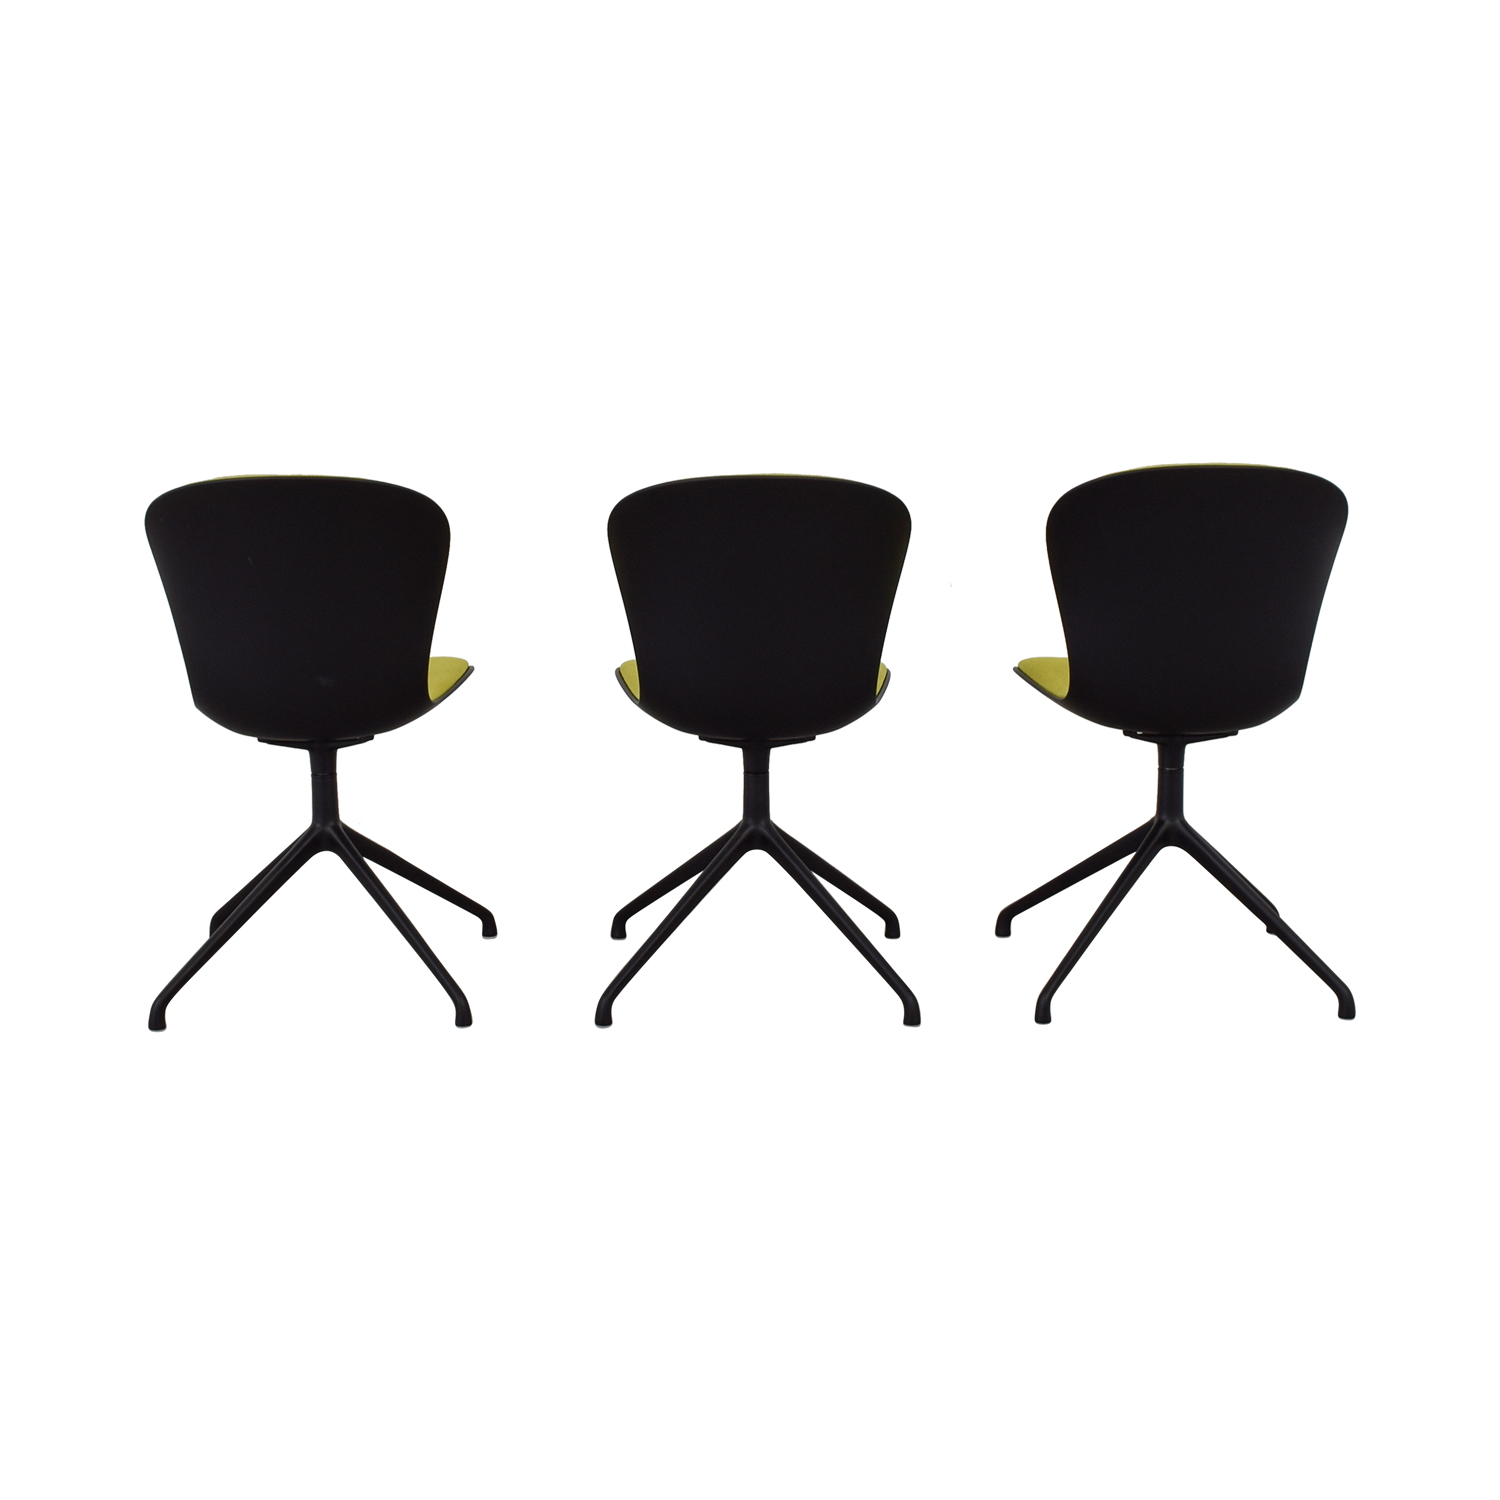 buy Bo Concept Bo Concept Dining Chairs online